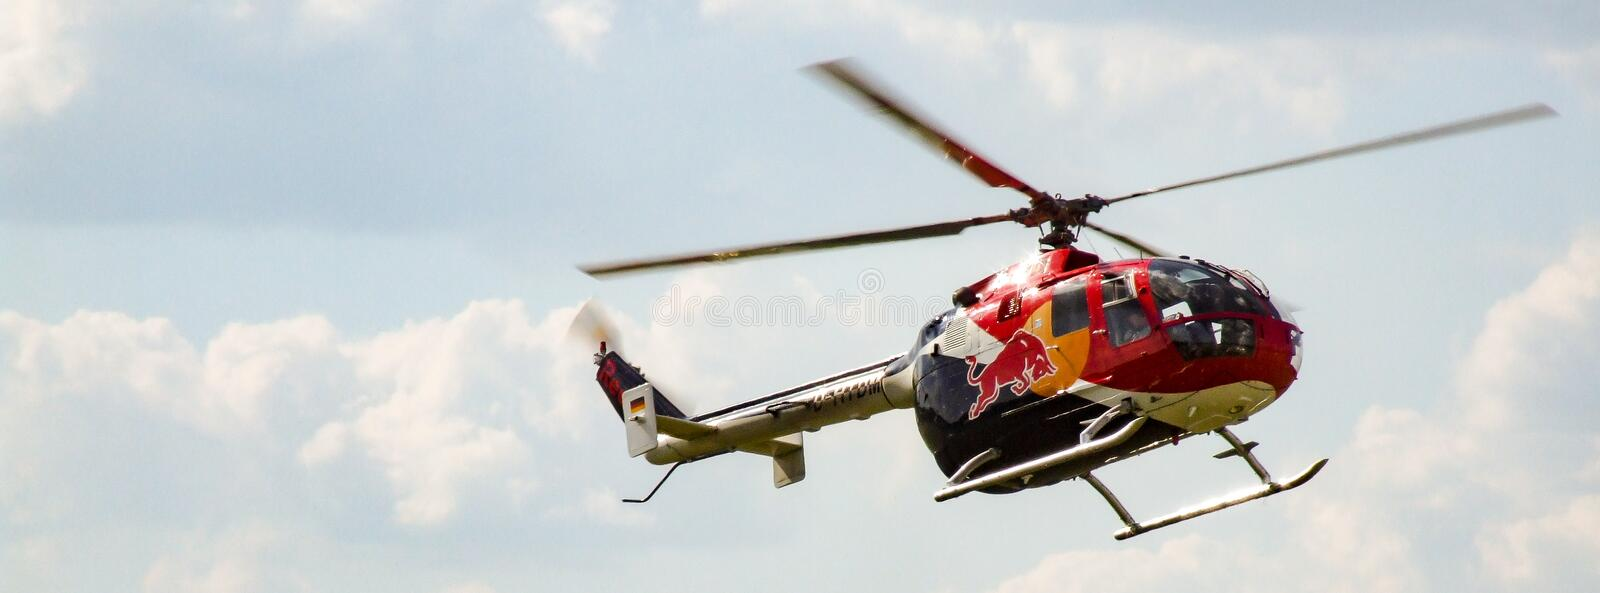 Eurocopter MBB Bo-105 of The Flying Bulls in flight. D-HTDM. Sunny cloudy sky in the background.Photo in facebook background format. Helicopter located in the stock image